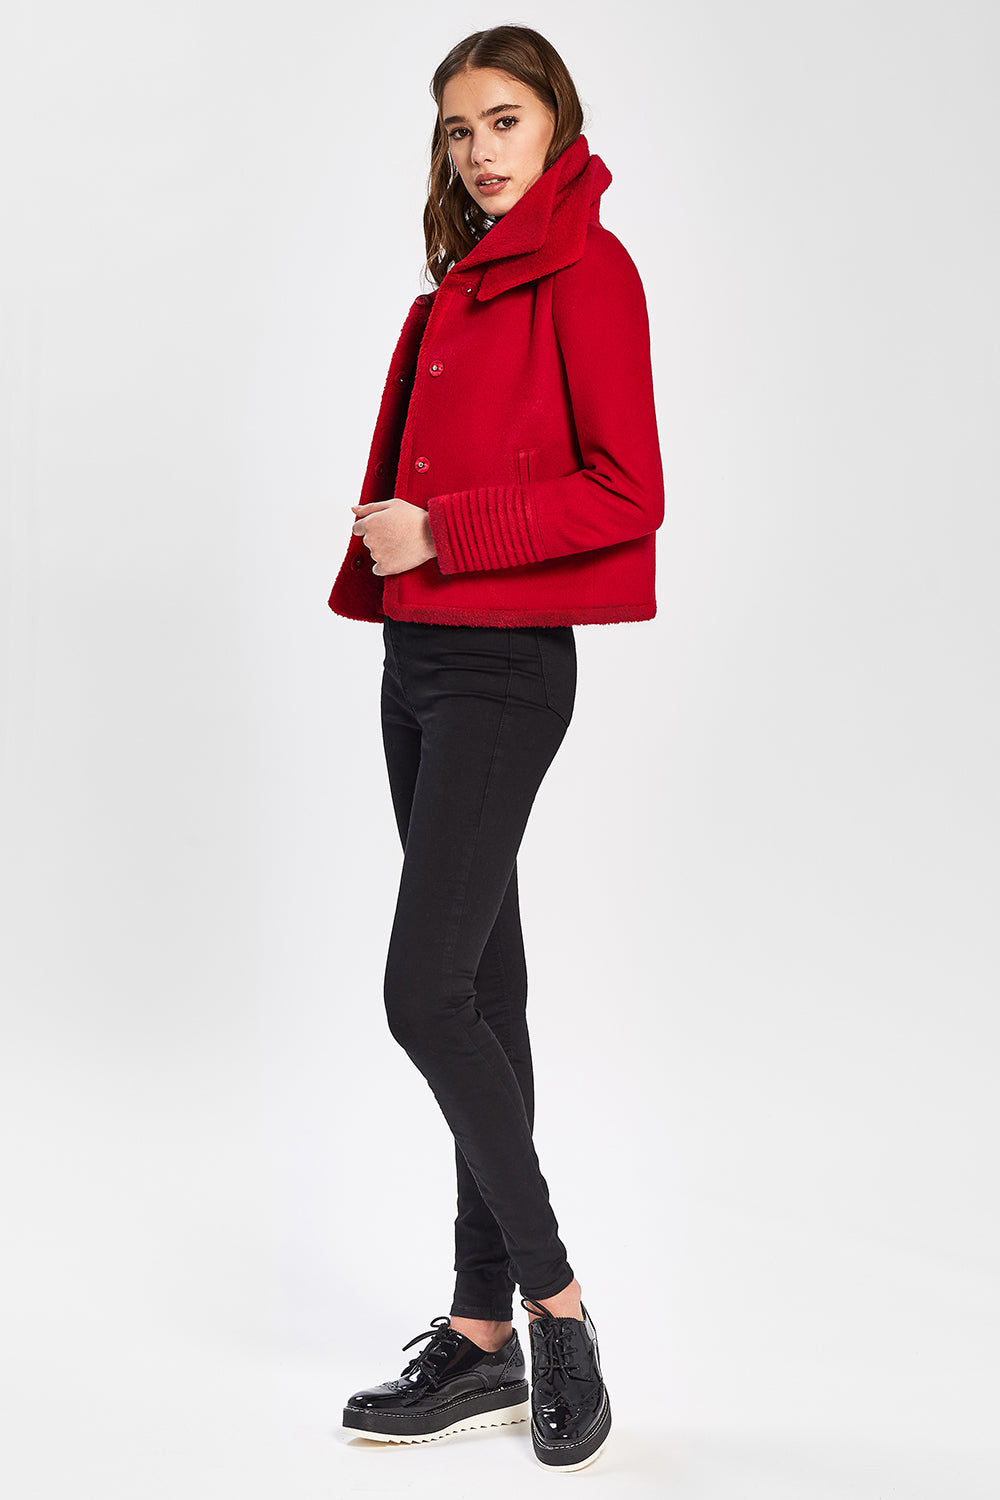 Sentaler Moto Jacket with Signature Double Collar featured in Baby Alpaca and available in Scarlet Red. Seen from side.